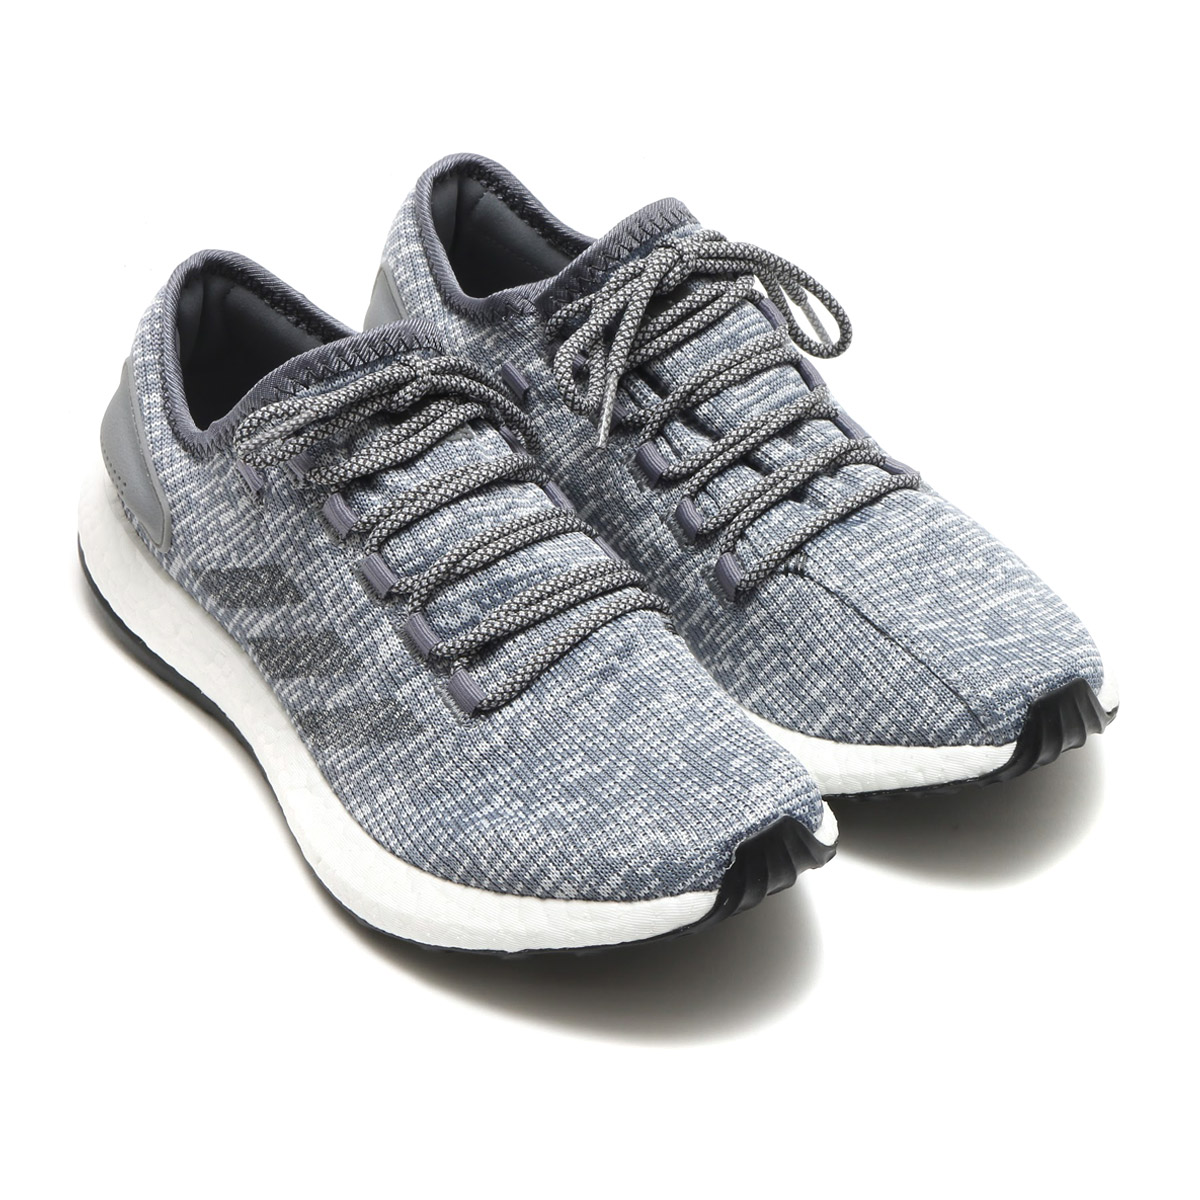 3fff0f165 The BOOST form deployment model who changes the concept of the running. I  realize unprecedented cushion characteristics and repulsion